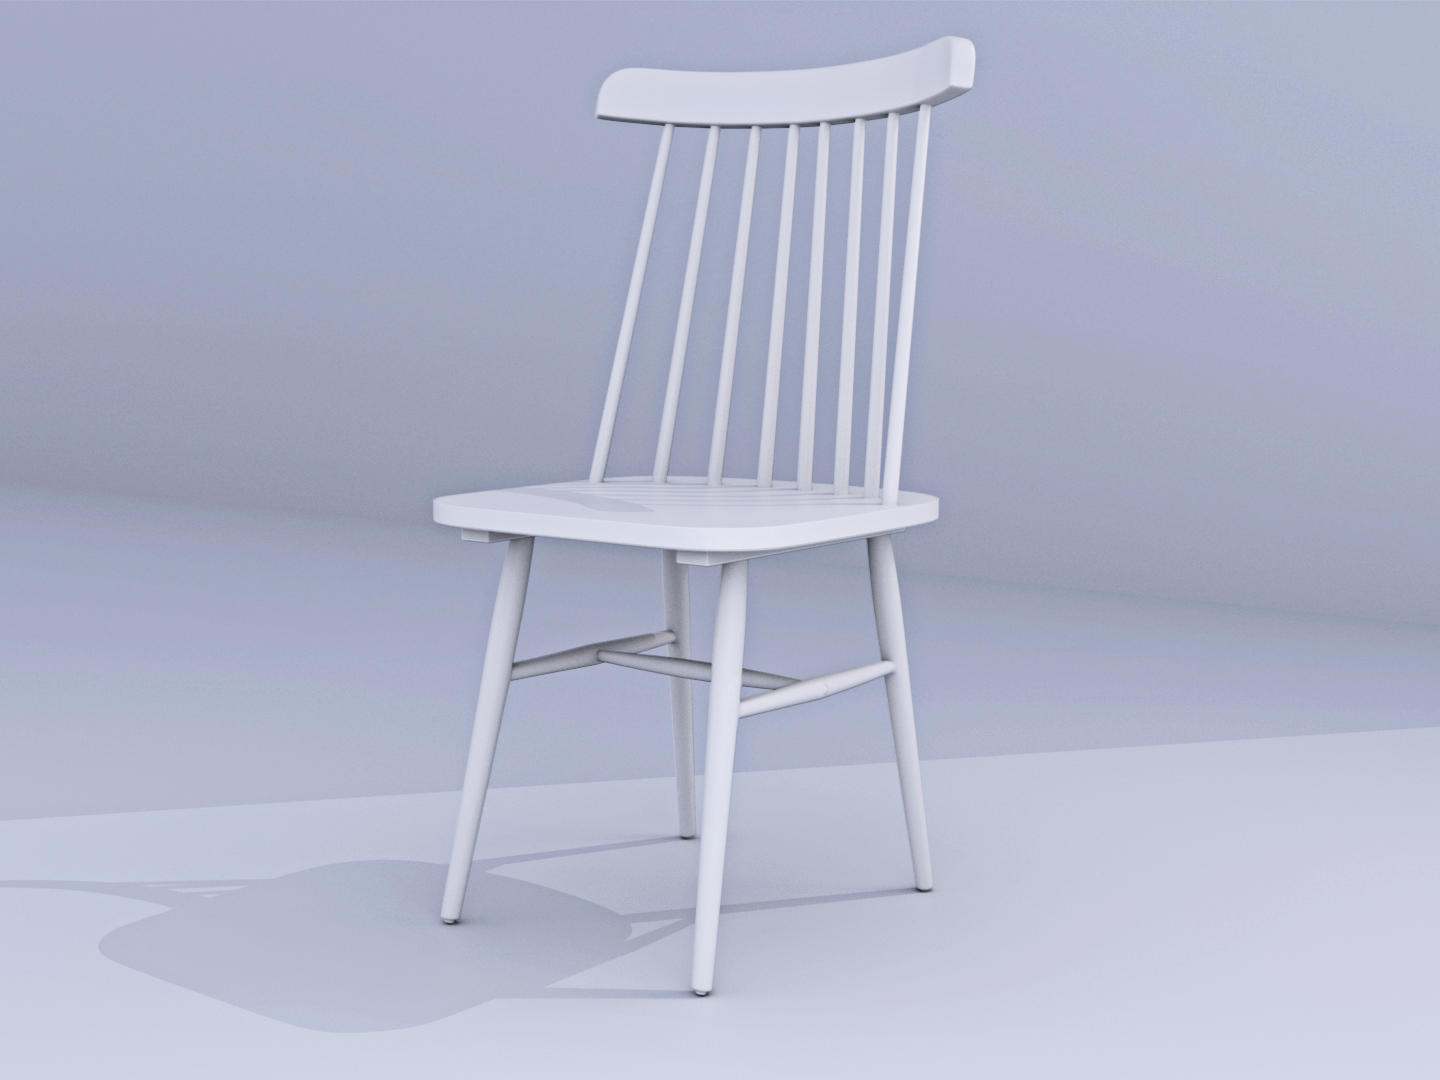 Chair 3D Model productmodeling 3dmodeling